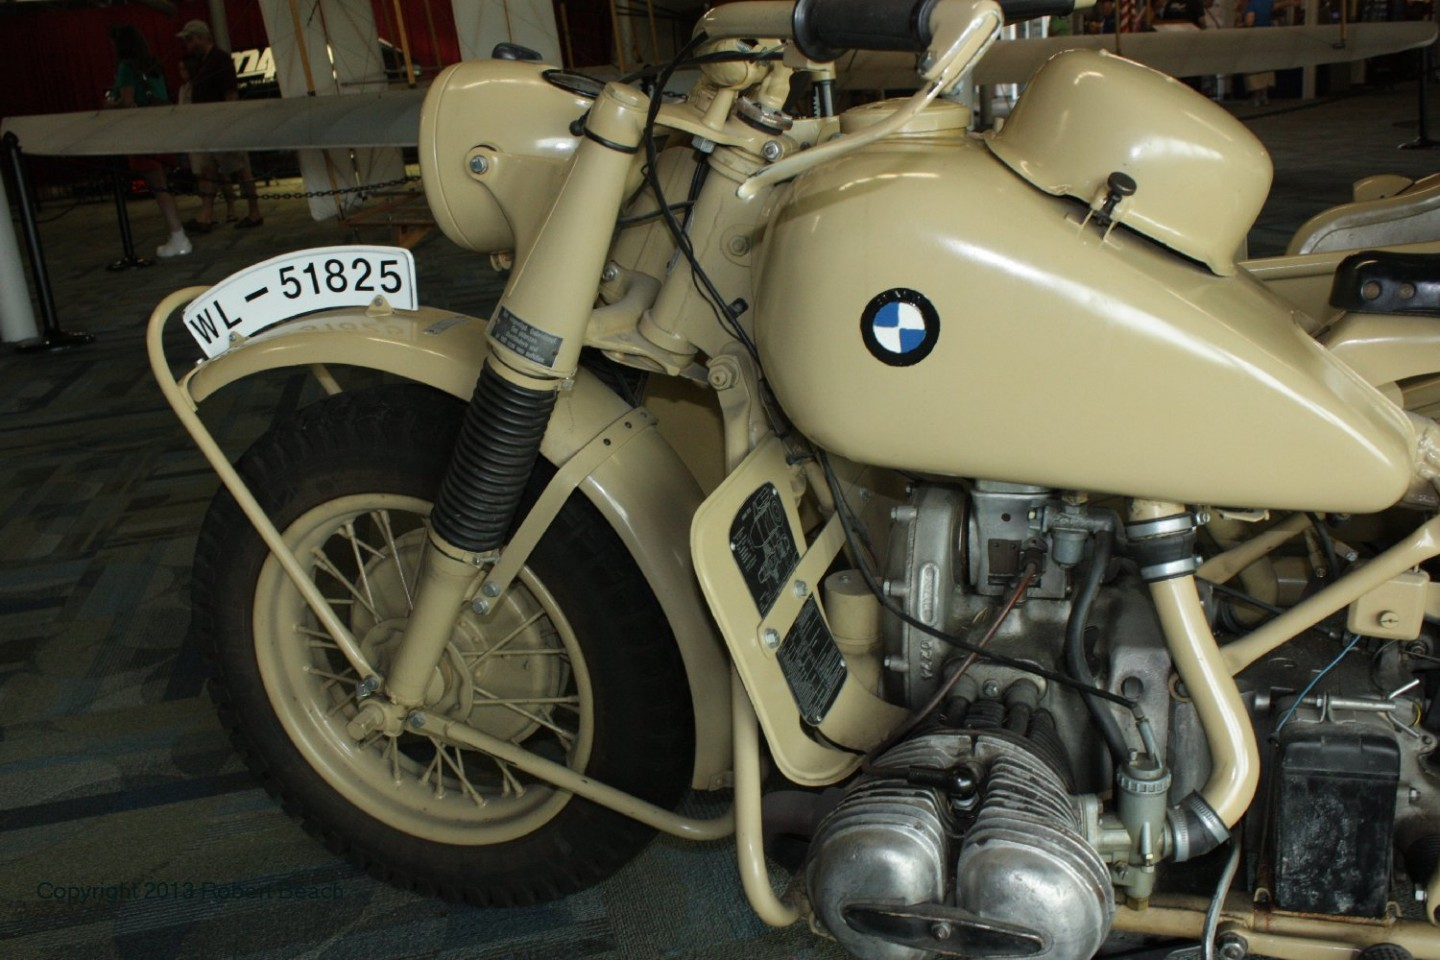 BMW_Mtrcycle_sidecar_cycle_left side cntr